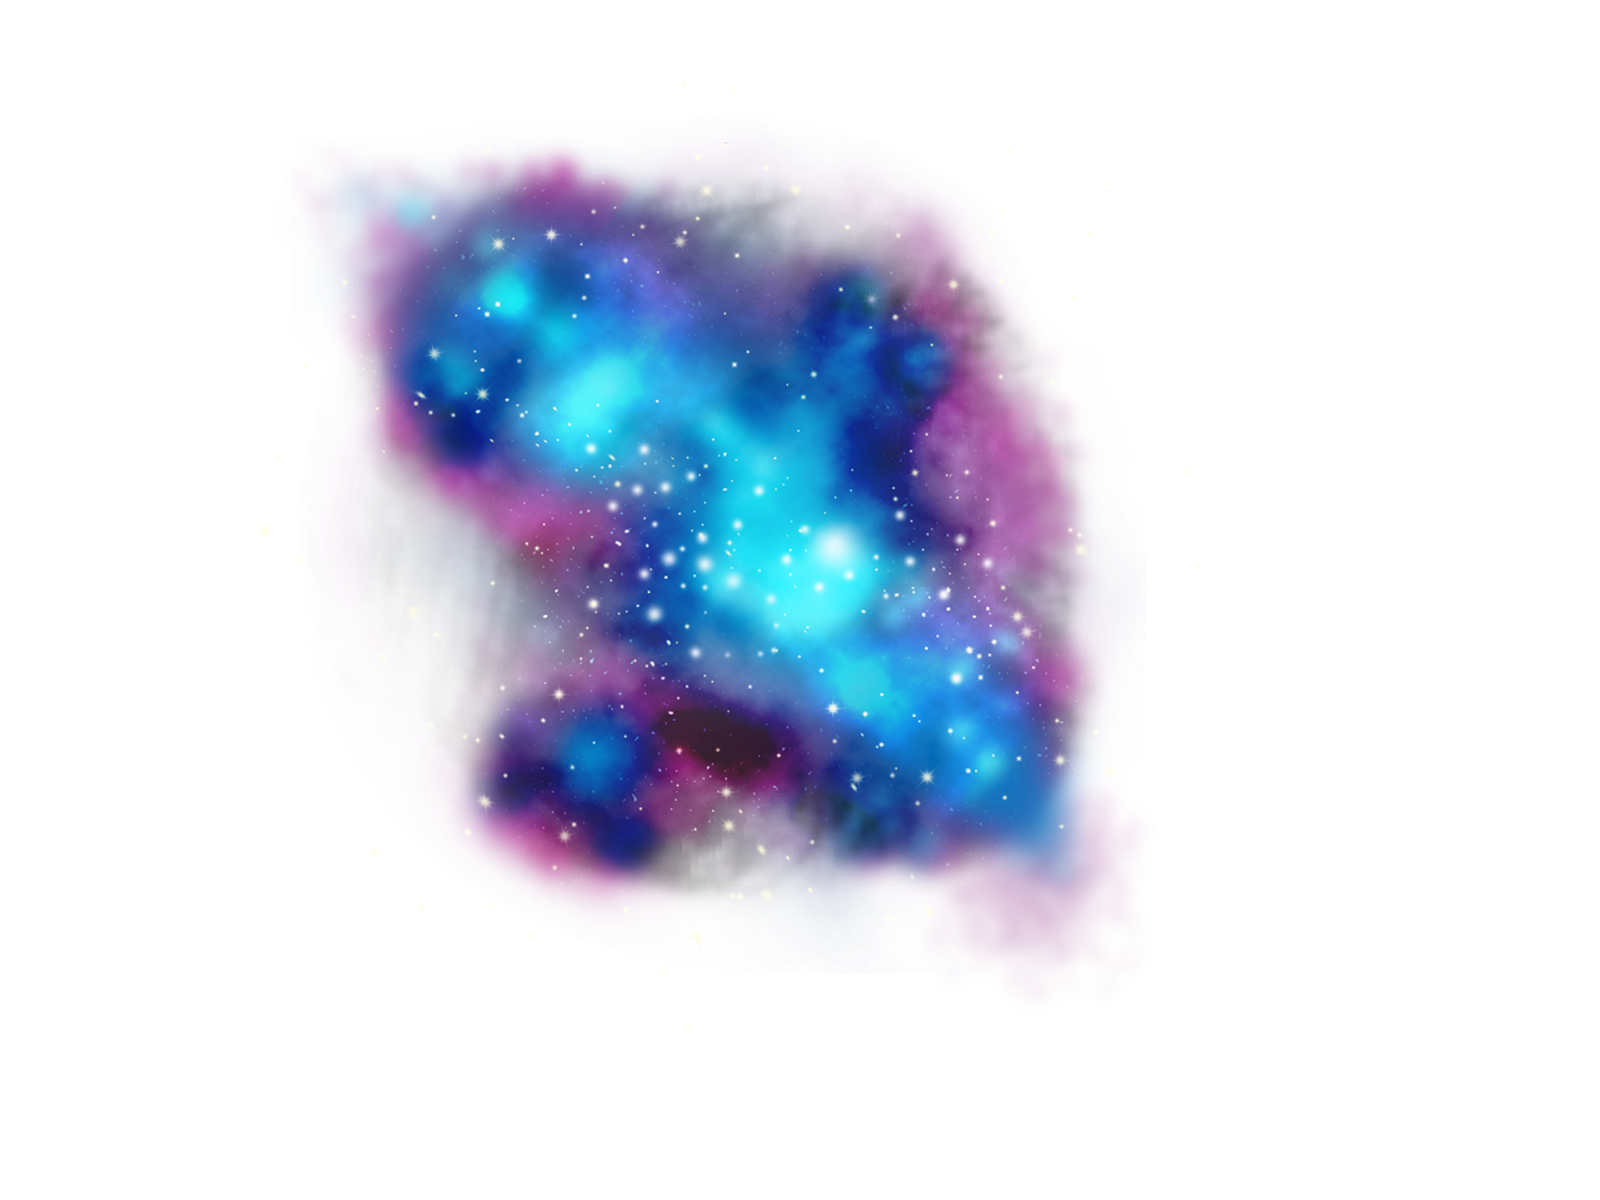 Galaxy clipart stardust. Png for editors who